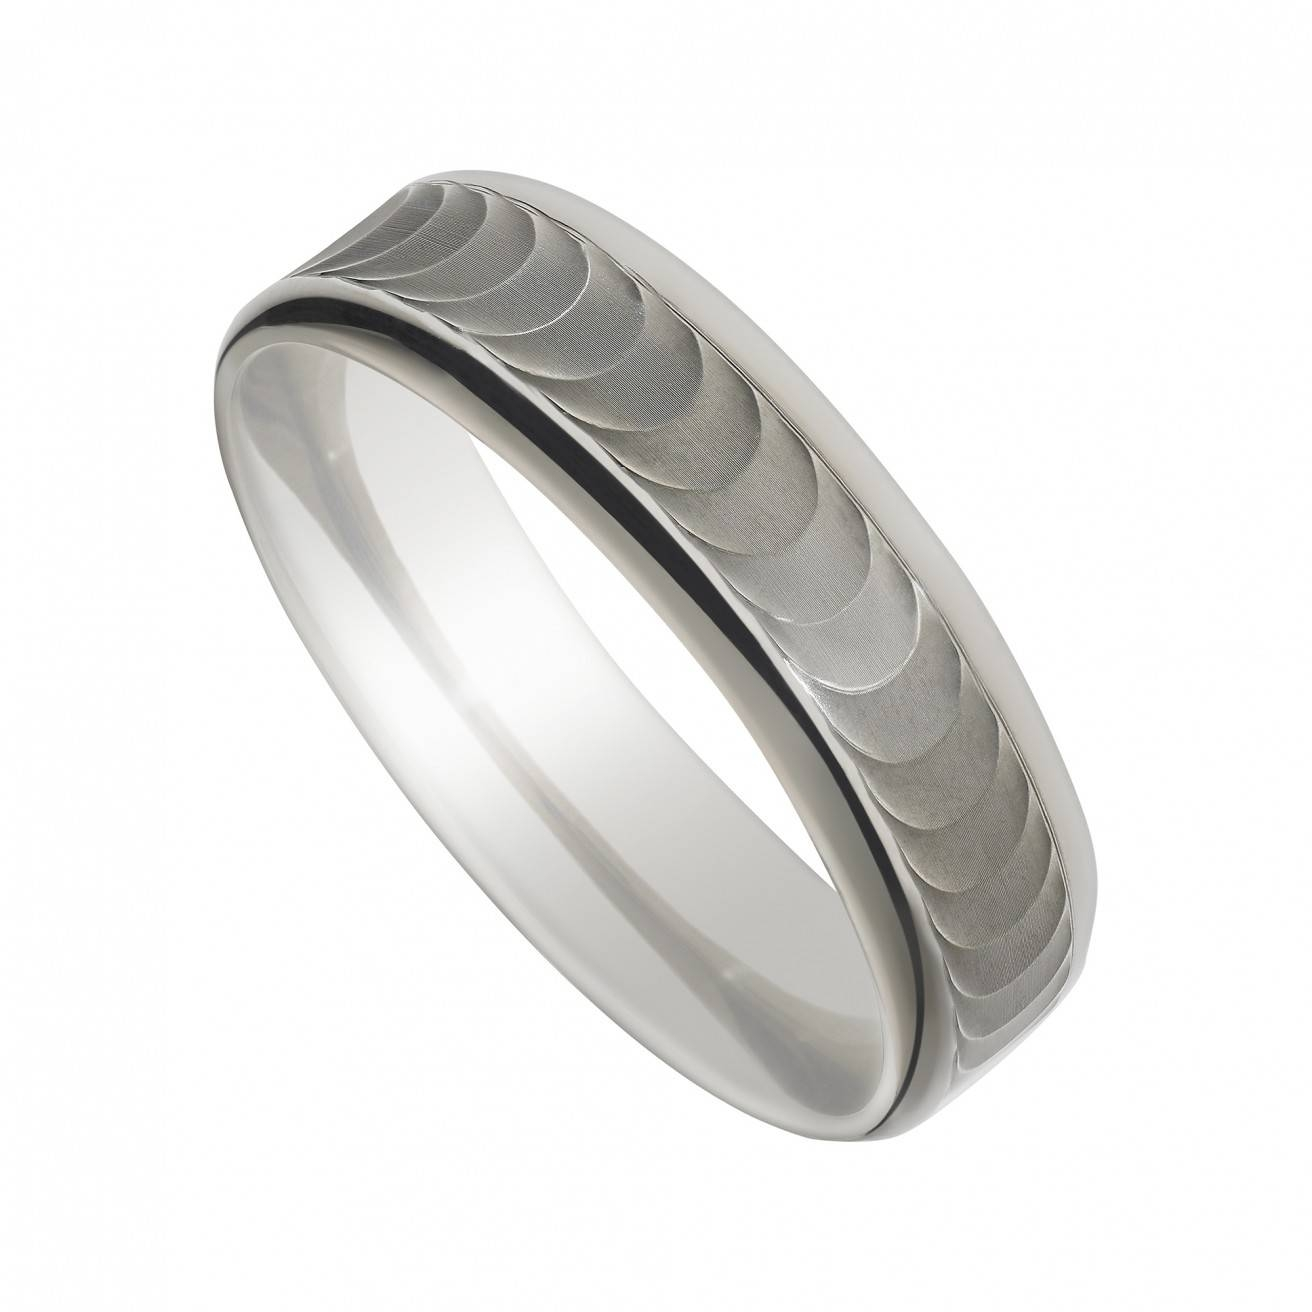 Palladium 950 5Mm Superior Court Plain Wedding Ring With Regard To 2017 5Mm Palladium Wedding Bands (View 8 of 15)